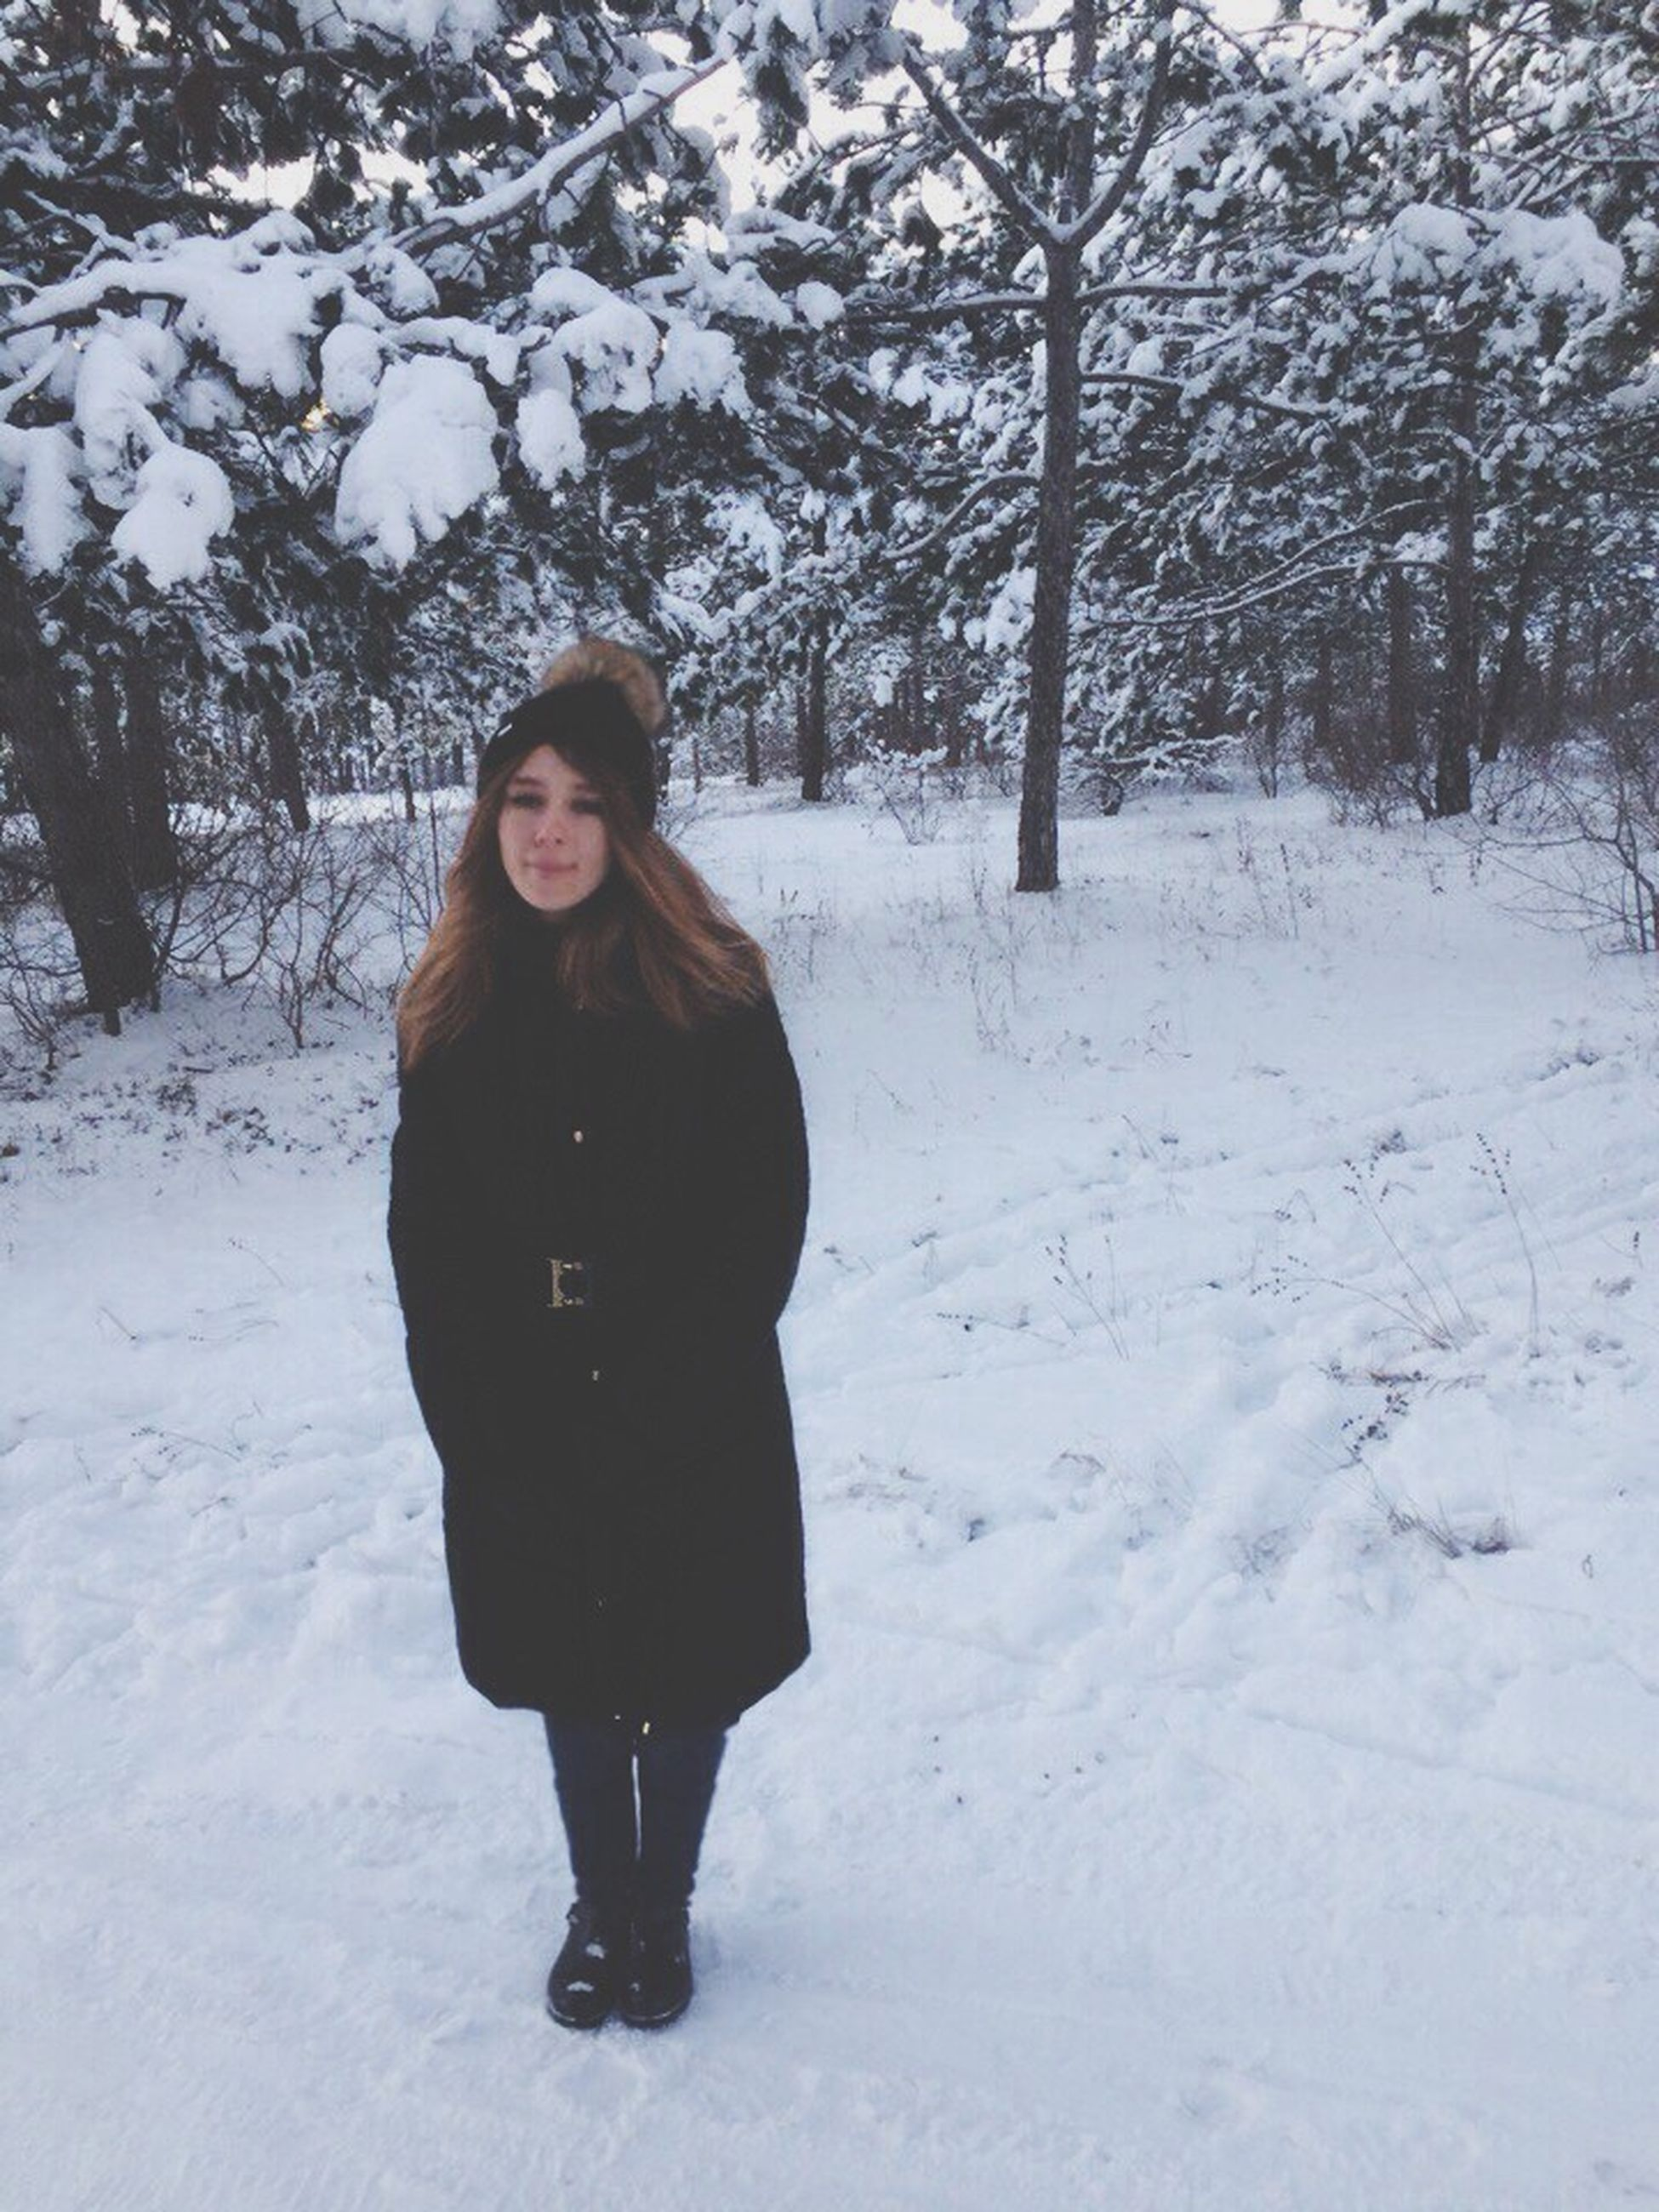 winter, snow, cold temperature, looking at camera, portrait, warm clothing, one person, beautiful woman, full length, standing, tree, beauty, young adult, front view, beautiful people, young women, one young woman only, one woman only, only women, outdoors, people, smiling, nature, leisure activity, adults only, day, real people, beauty in nature, adult